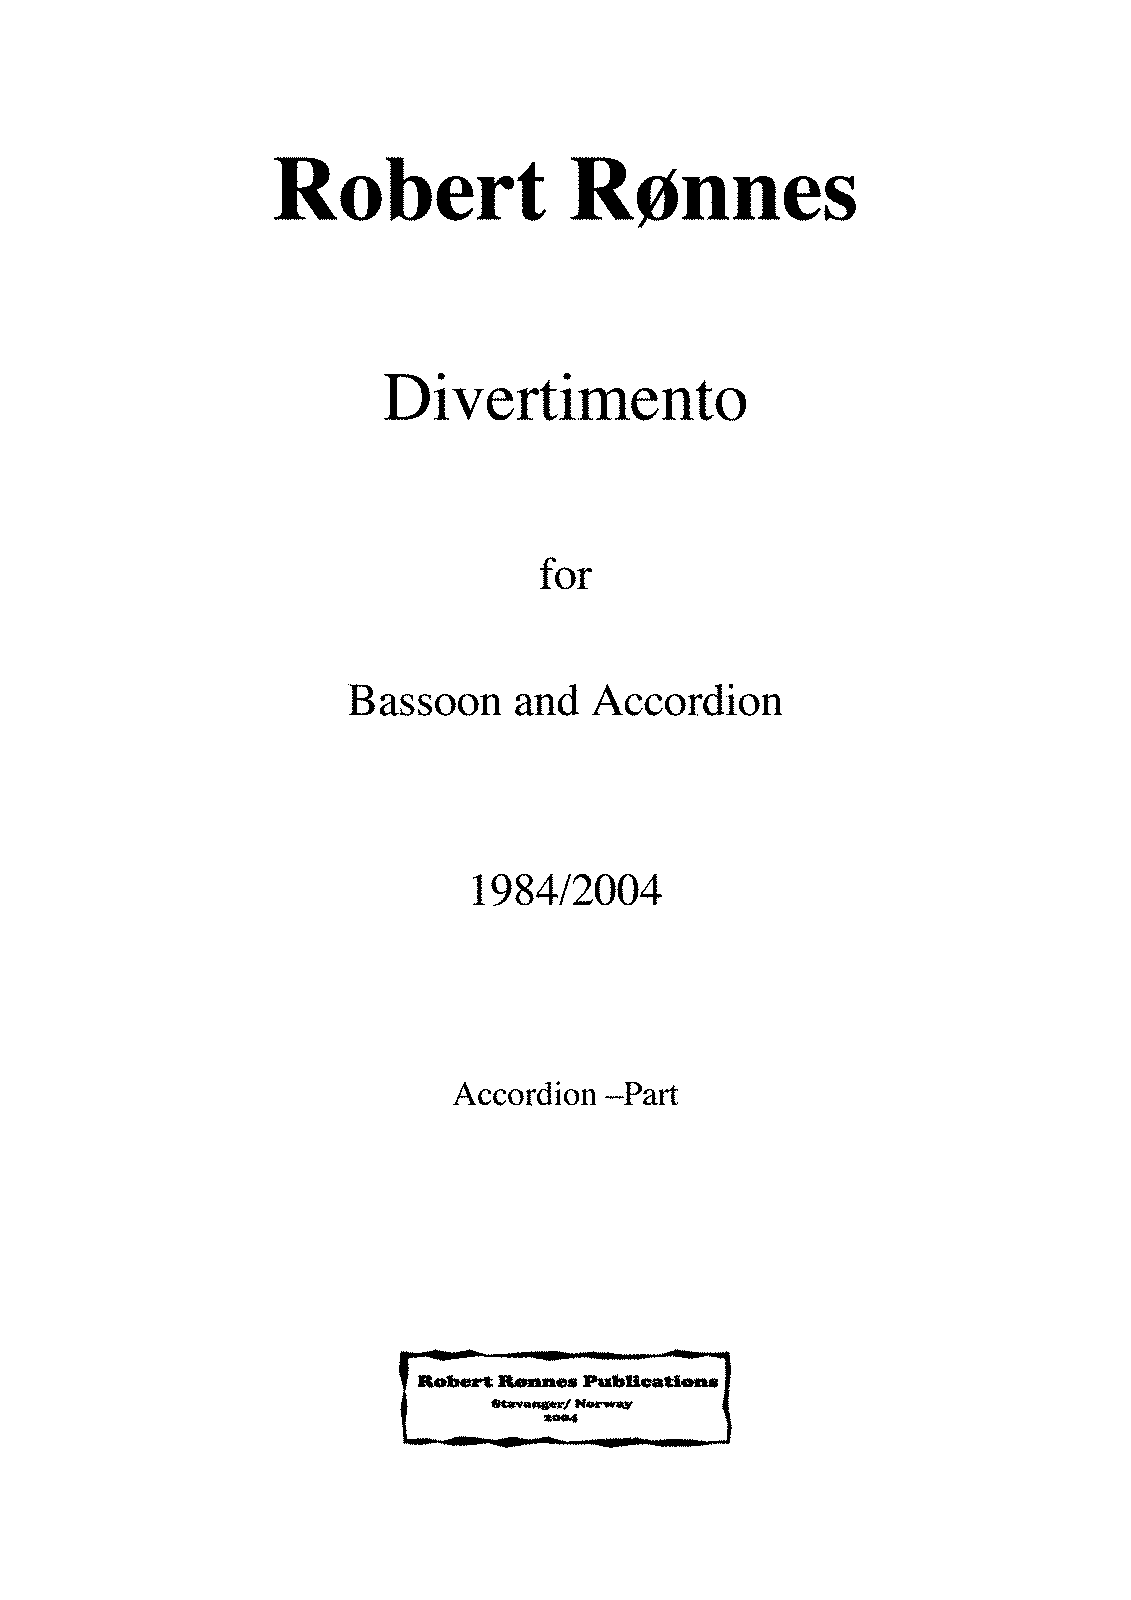 PMLP569871-R.Ronnes Divertimento for Bassoon and Accordeon.Score.pdf